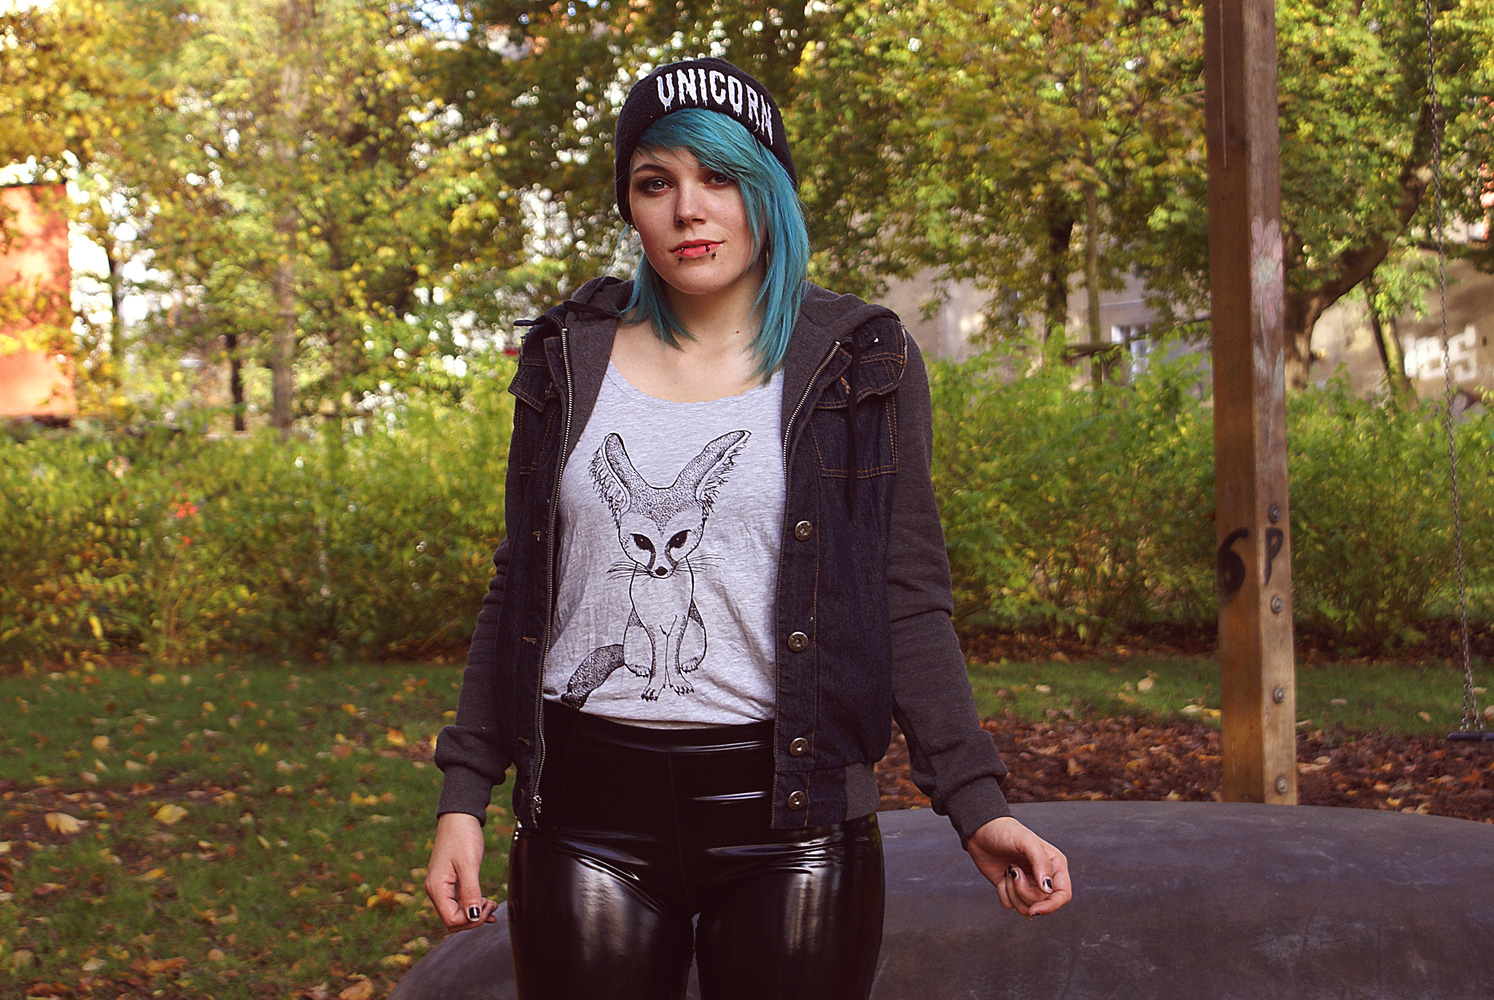 monki fuchs fox fennec wüstenfuchs shirt tank top unicorn killstar beanie herbst glamour kills gk jeans denim pvc leggings hipster punk